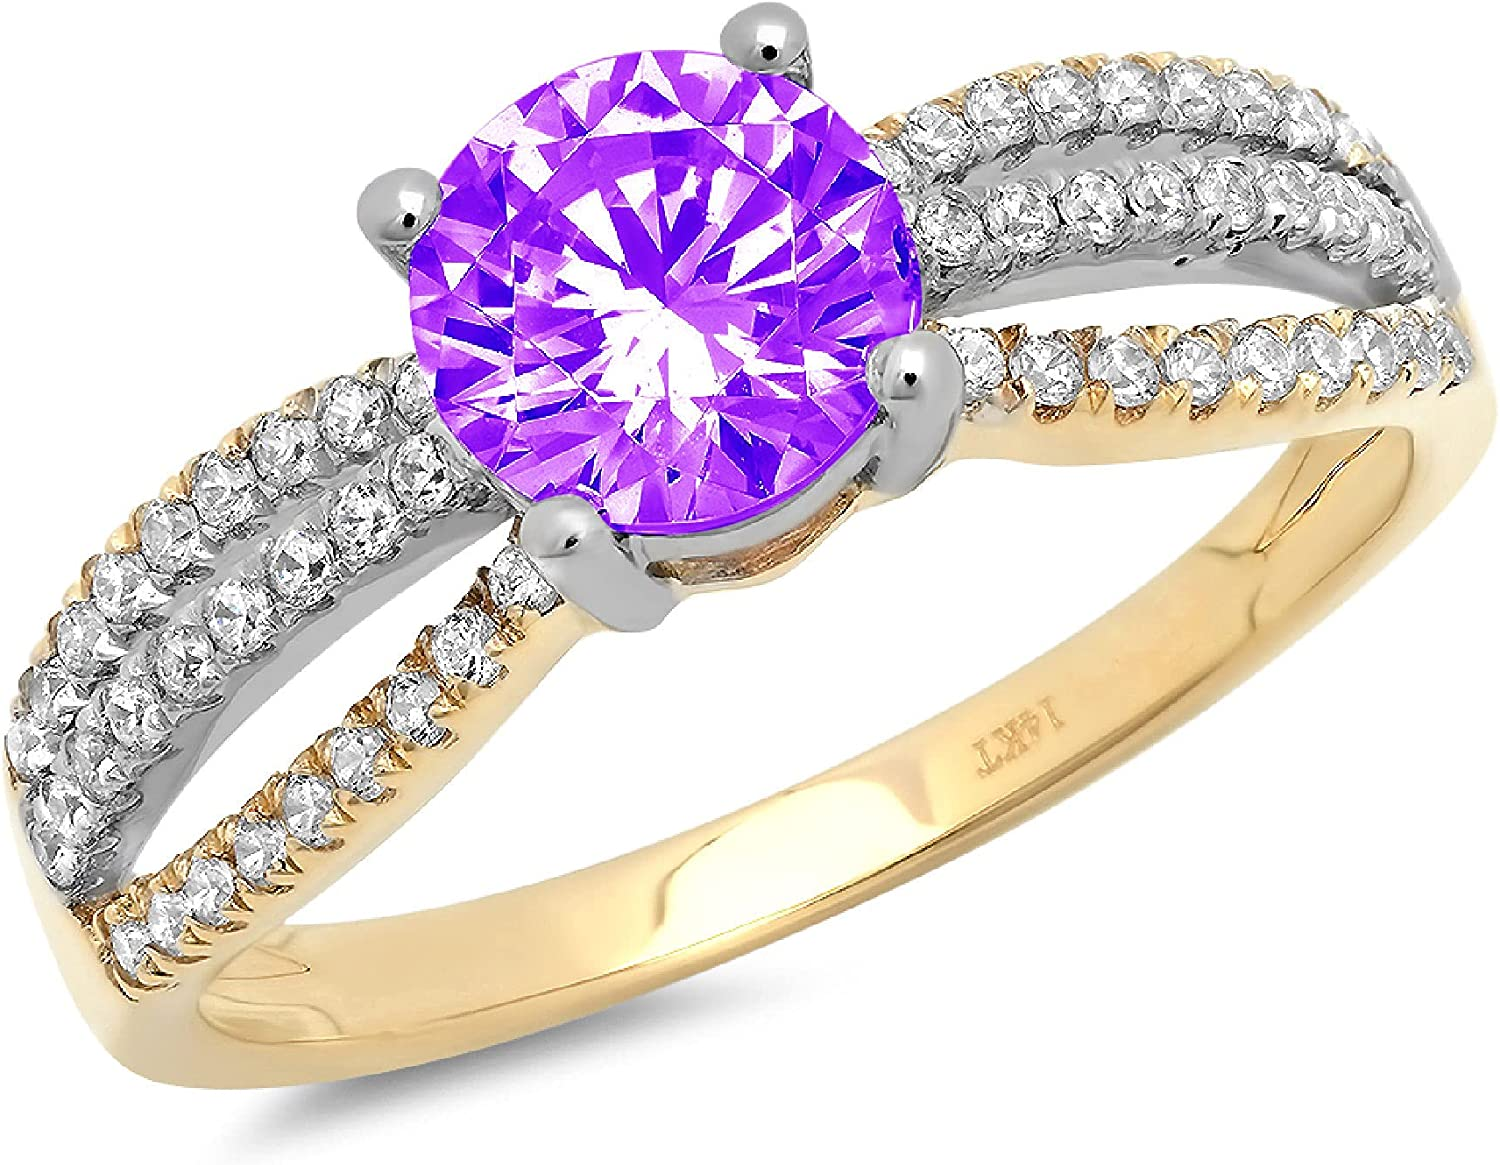 1.25 ct Round Cut Solitaire accent Purple Max 78% OFF Natural Gem Amethyst S OFFicial